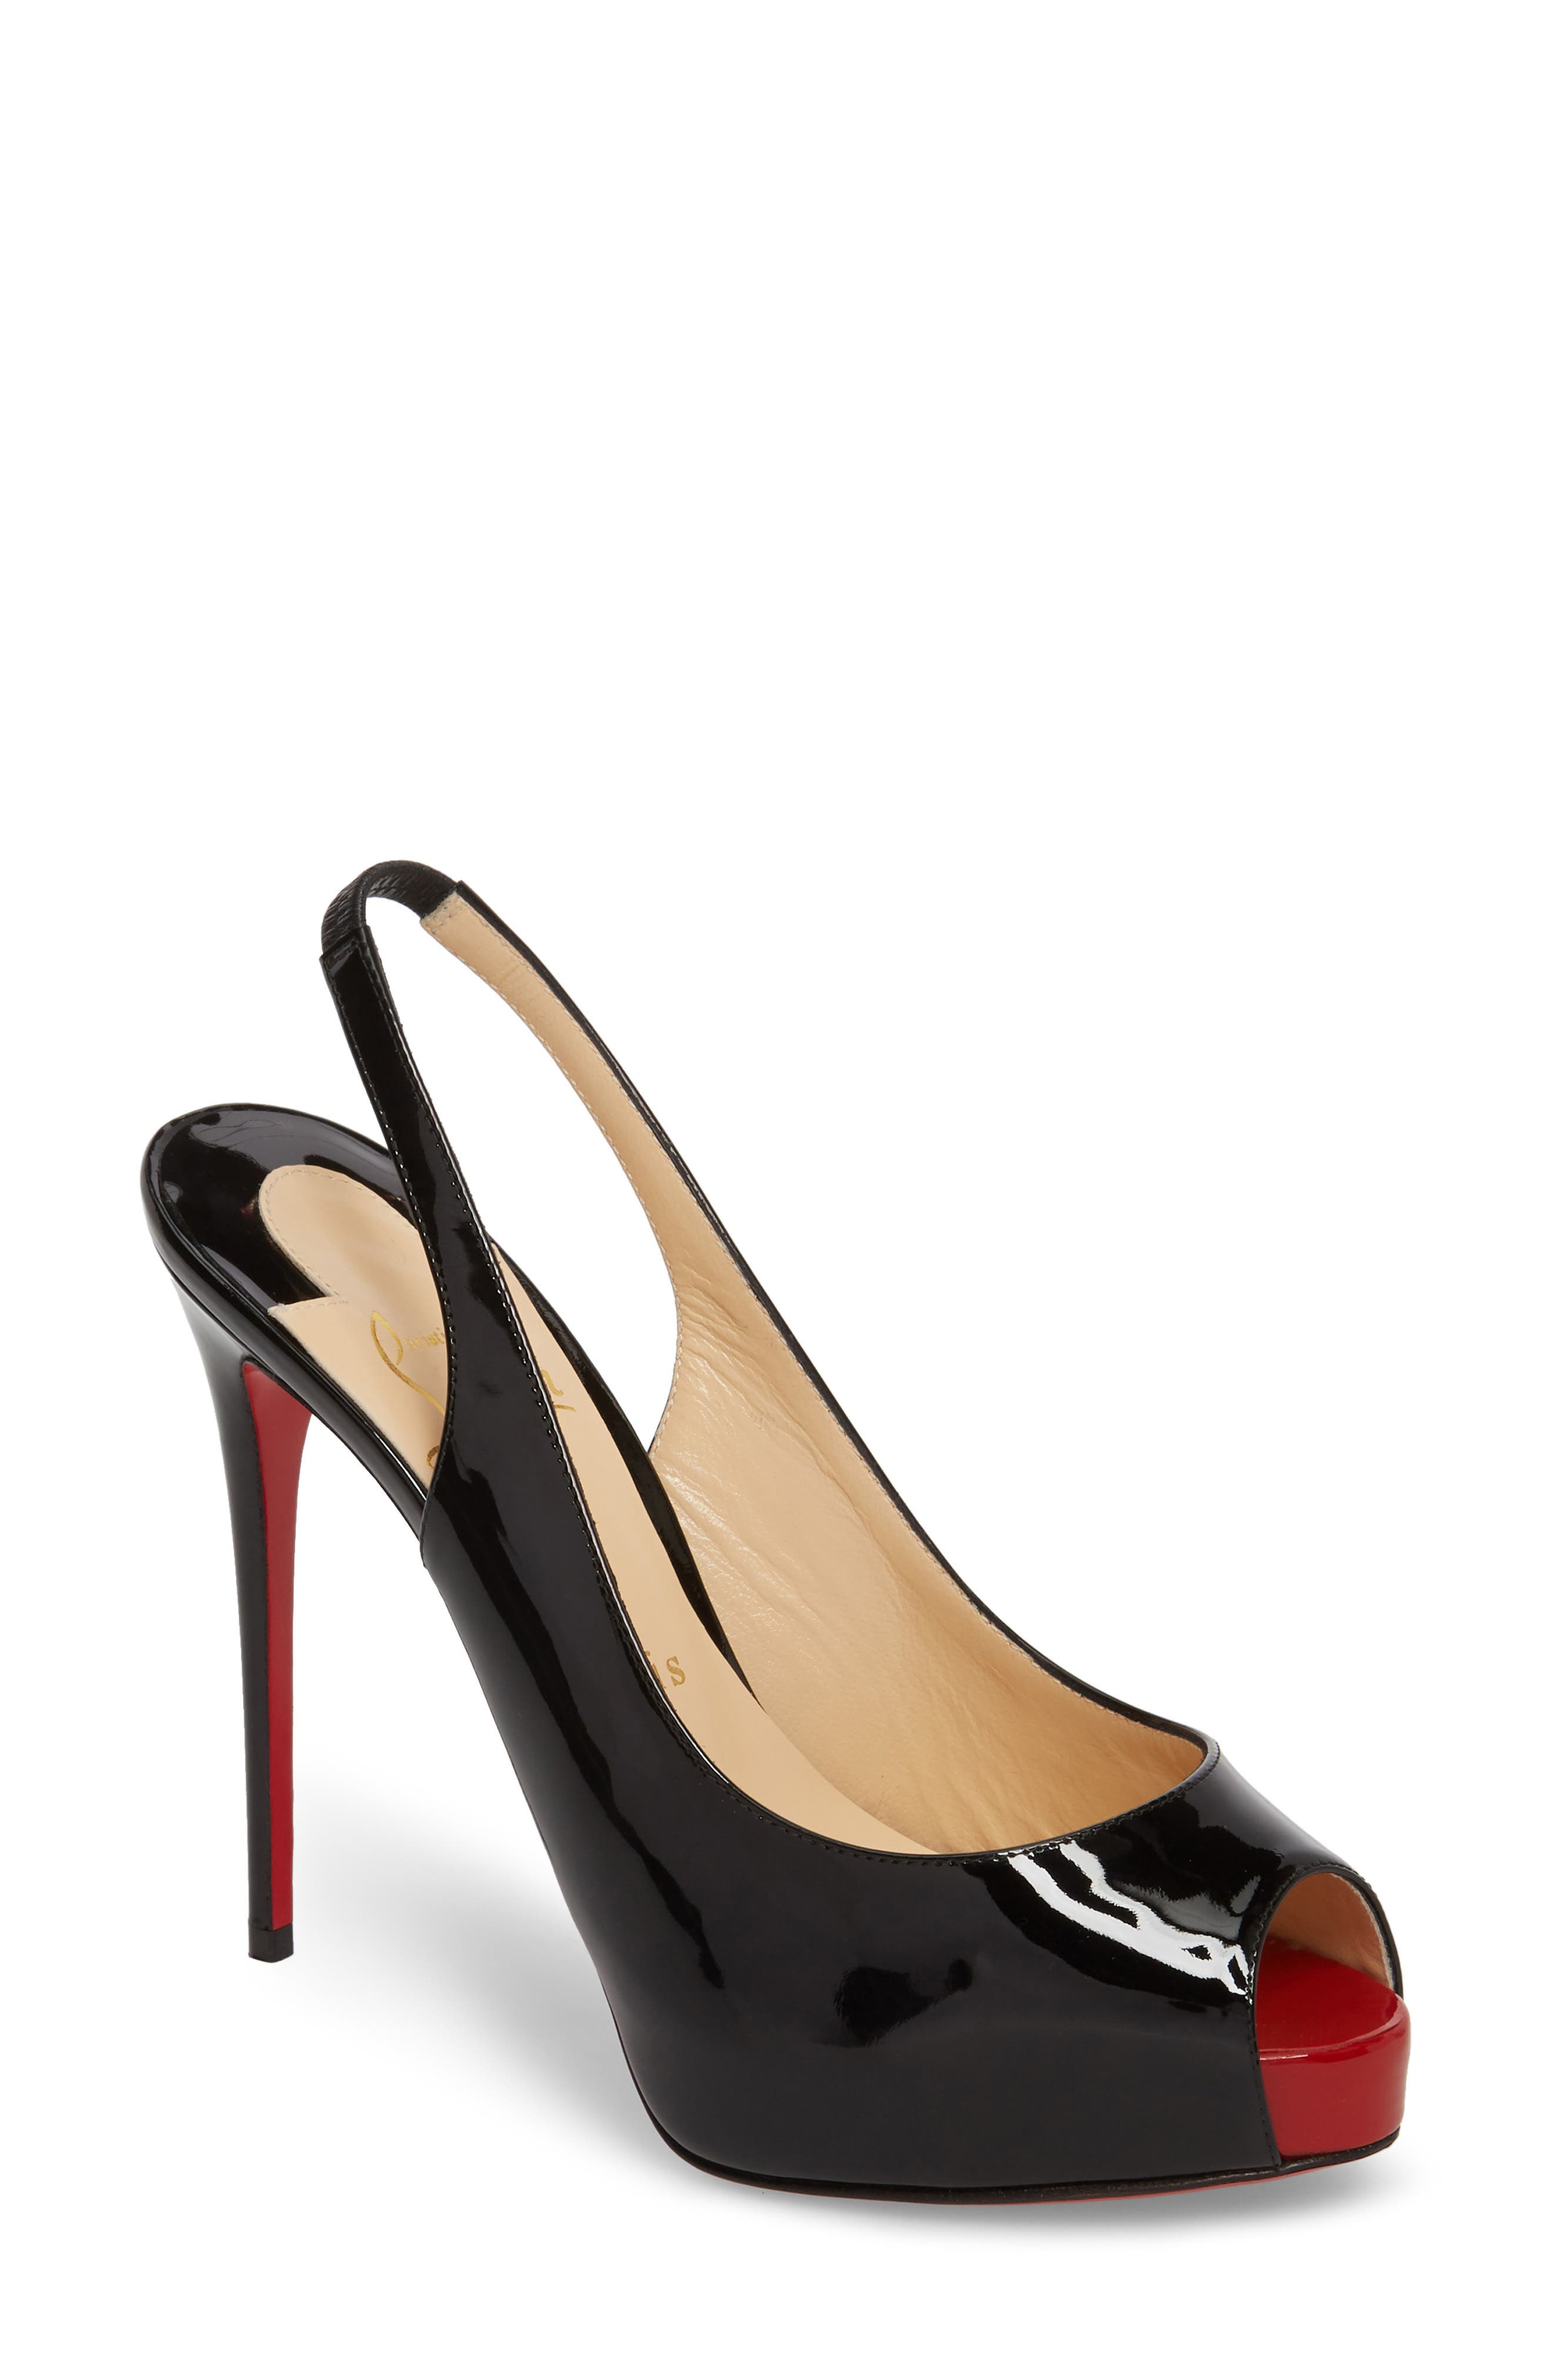 Pre-owned - Private Number heels Christian Louboutin K0Z6ZrYO